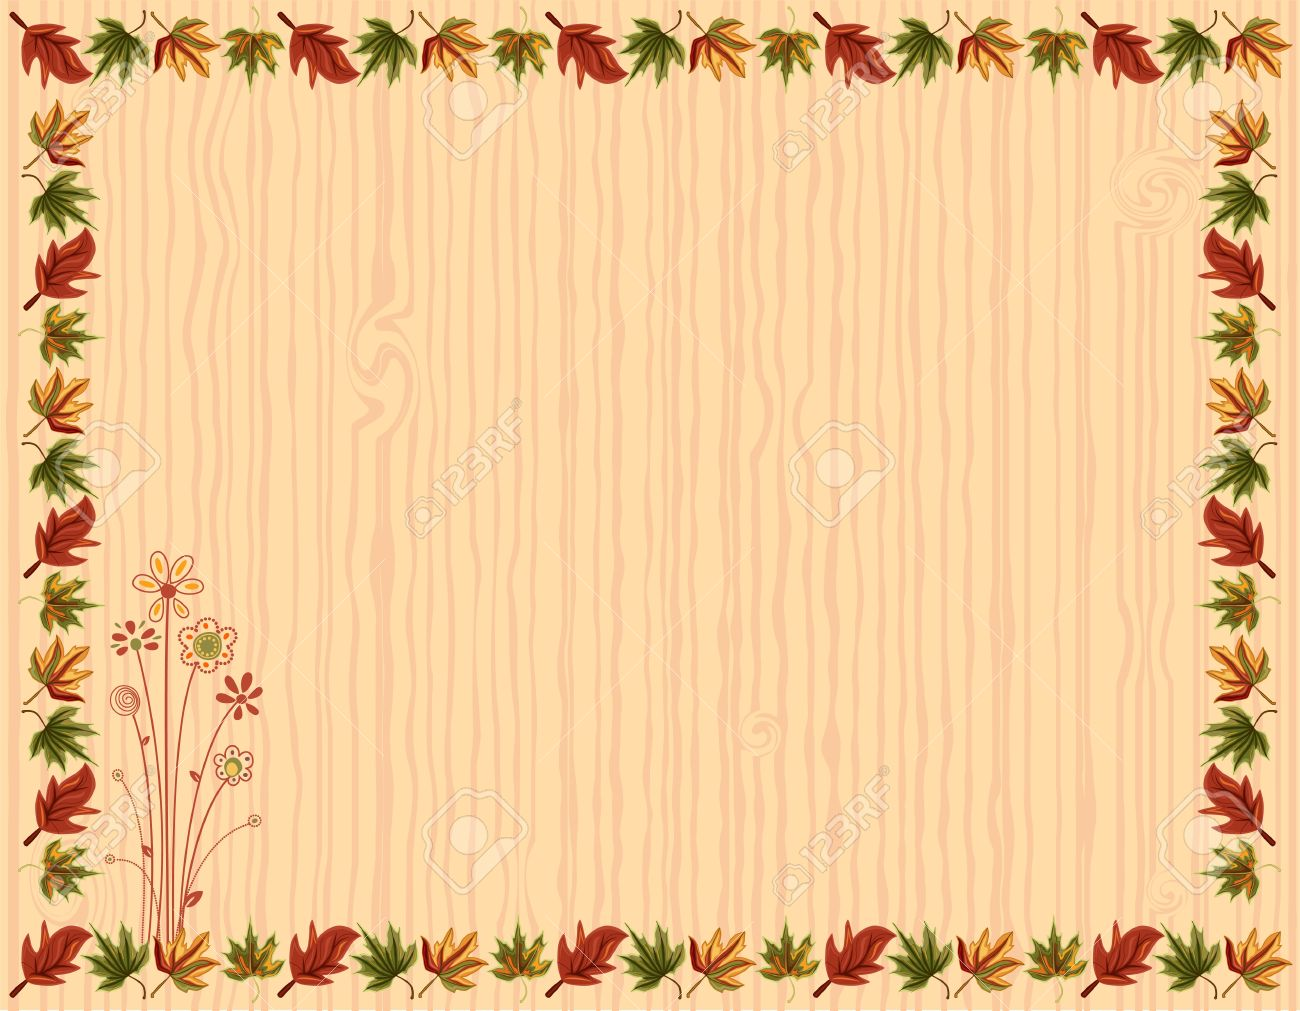 Autumn Greeting Card With Leaves Border And Floral Design Royalty ...